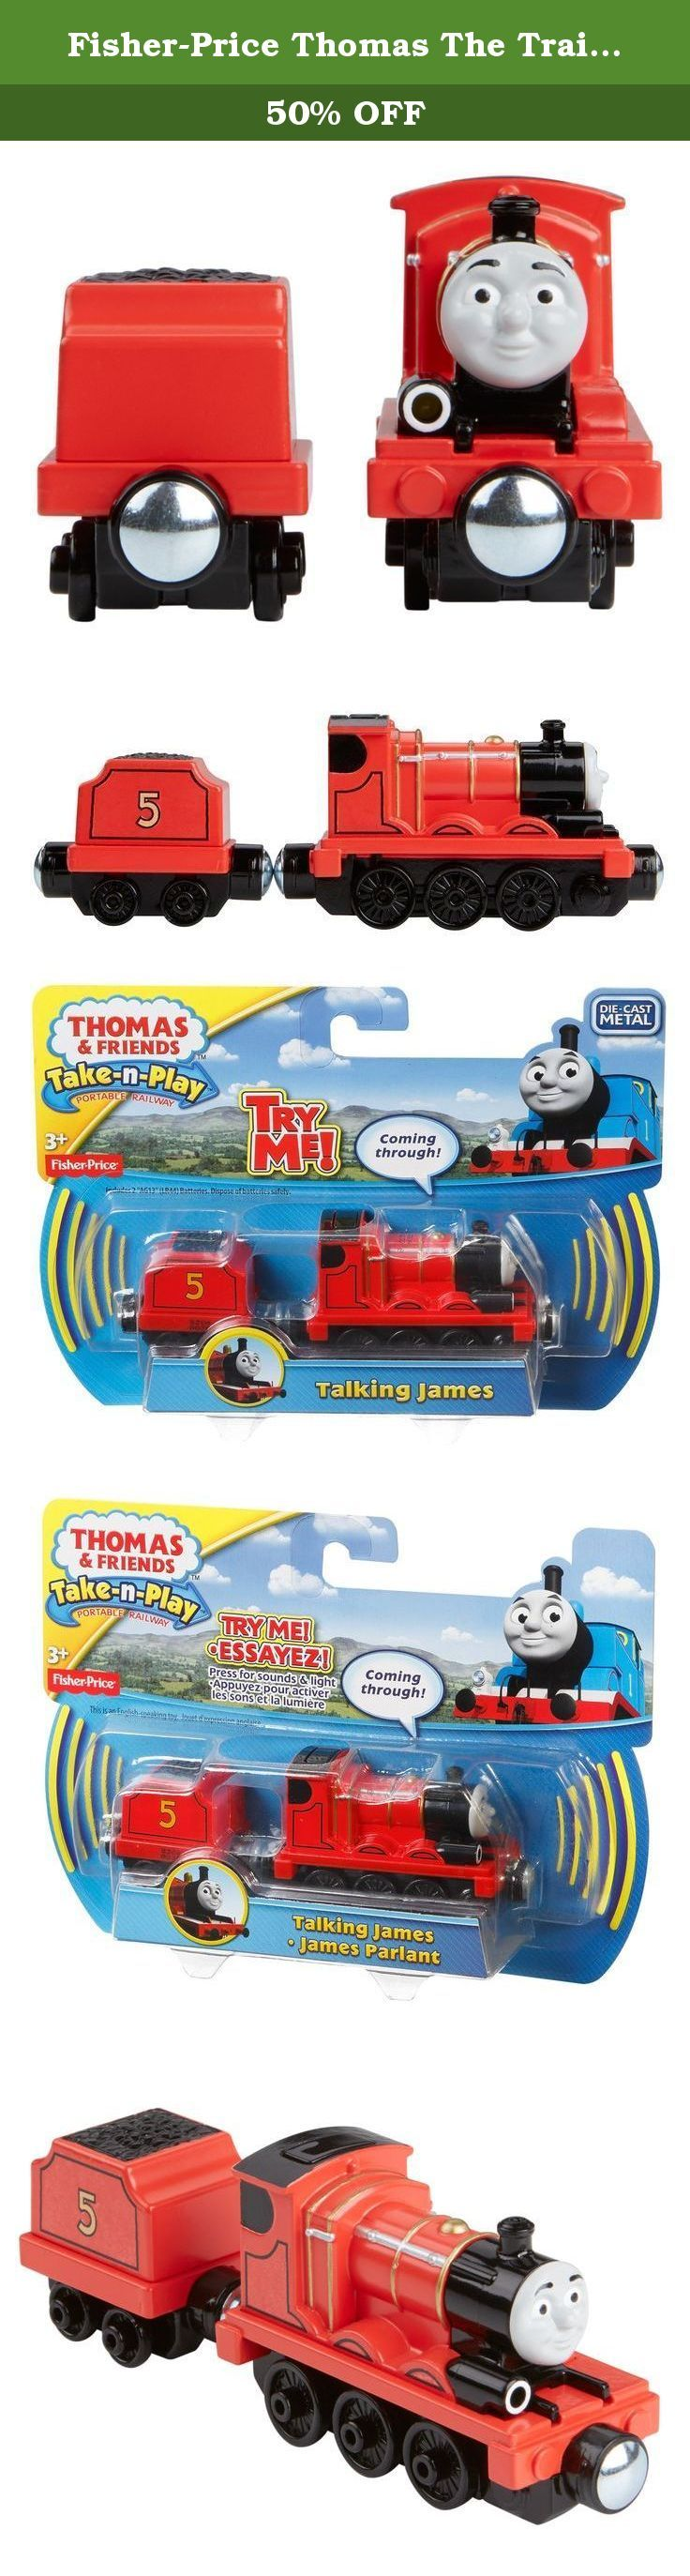 "Fisher-Price Thomas The Train Take-N-Play Talking James. James comes to life as a die-cast metal train engine with phrases, whistles and fun engine sounds! James features a working light. Press the button to hear James' signature phrases in his very own voice! Perfect for Take-n-Play Portable Fold-Out Playsets (sold separately and subject to availability). Requires 2 ""AG13"" (LR44) batteries. Ages 3+."